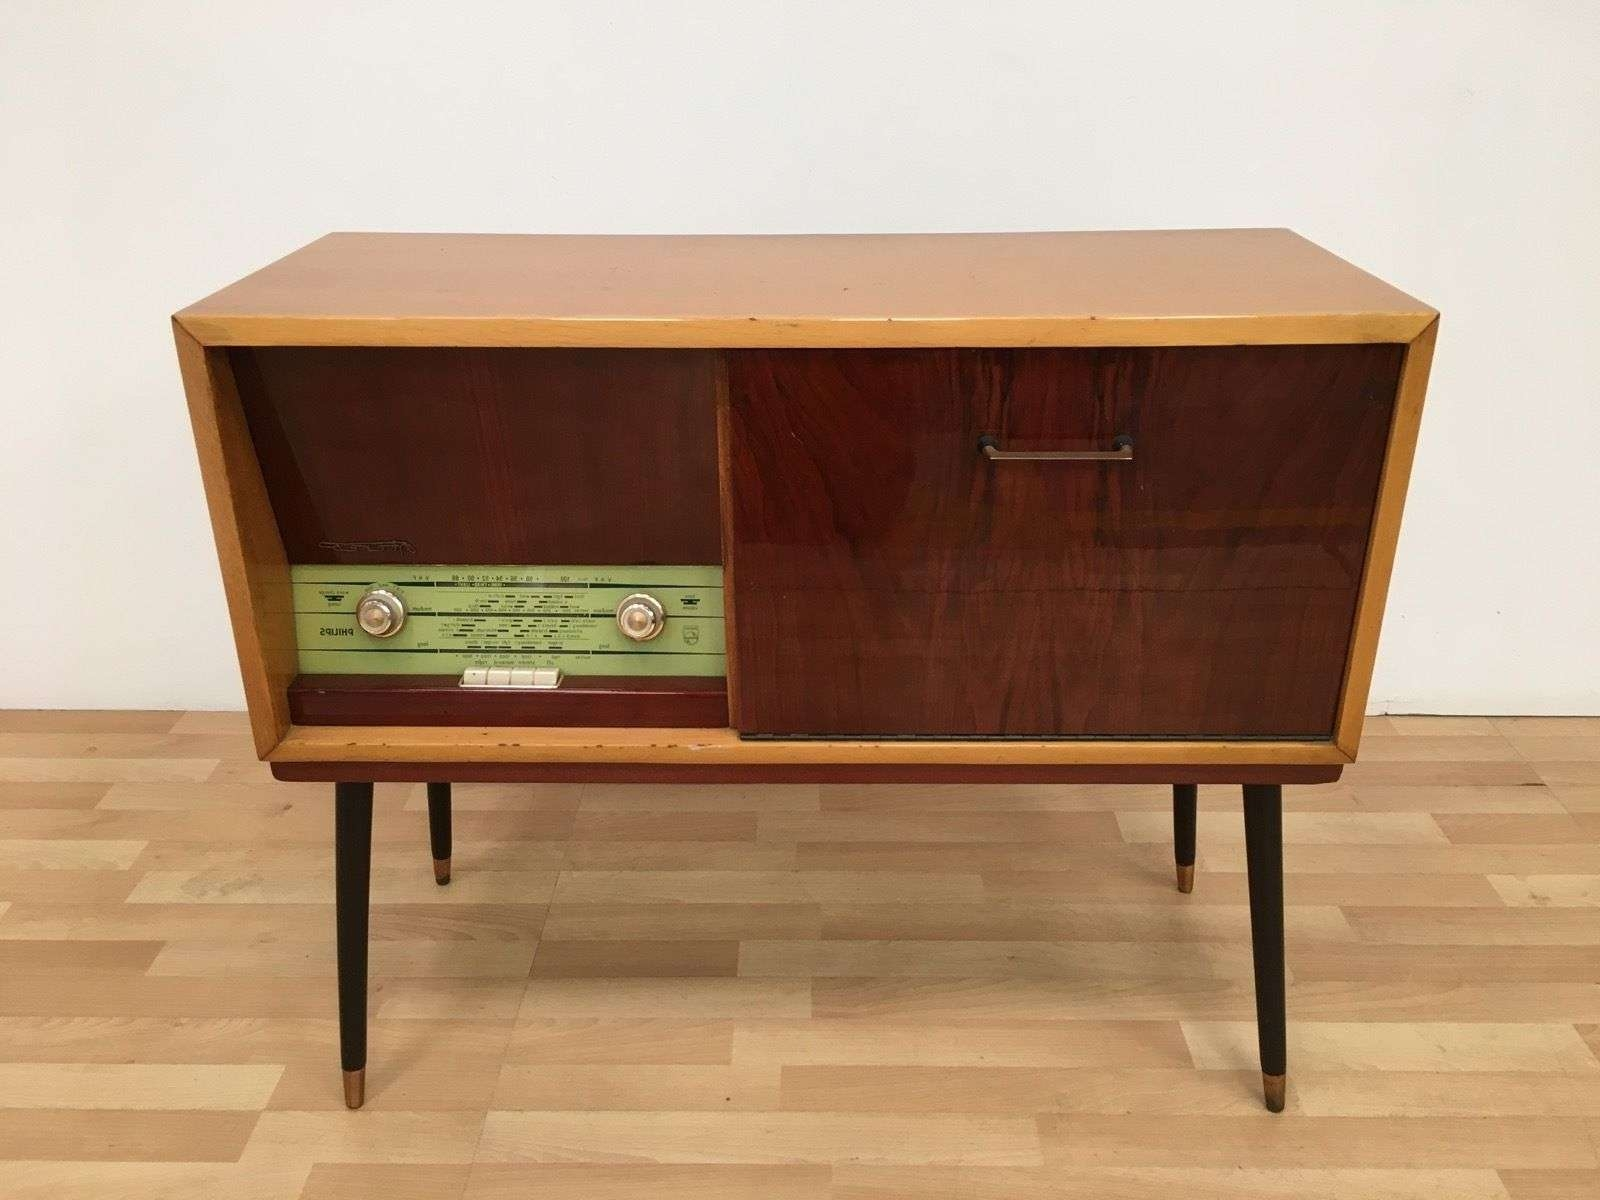 Vintage Retro Mid Century 50S 60S Philips Stereo Radiogram With Regard To 50S Sideboards (Gallery 3 of 20)